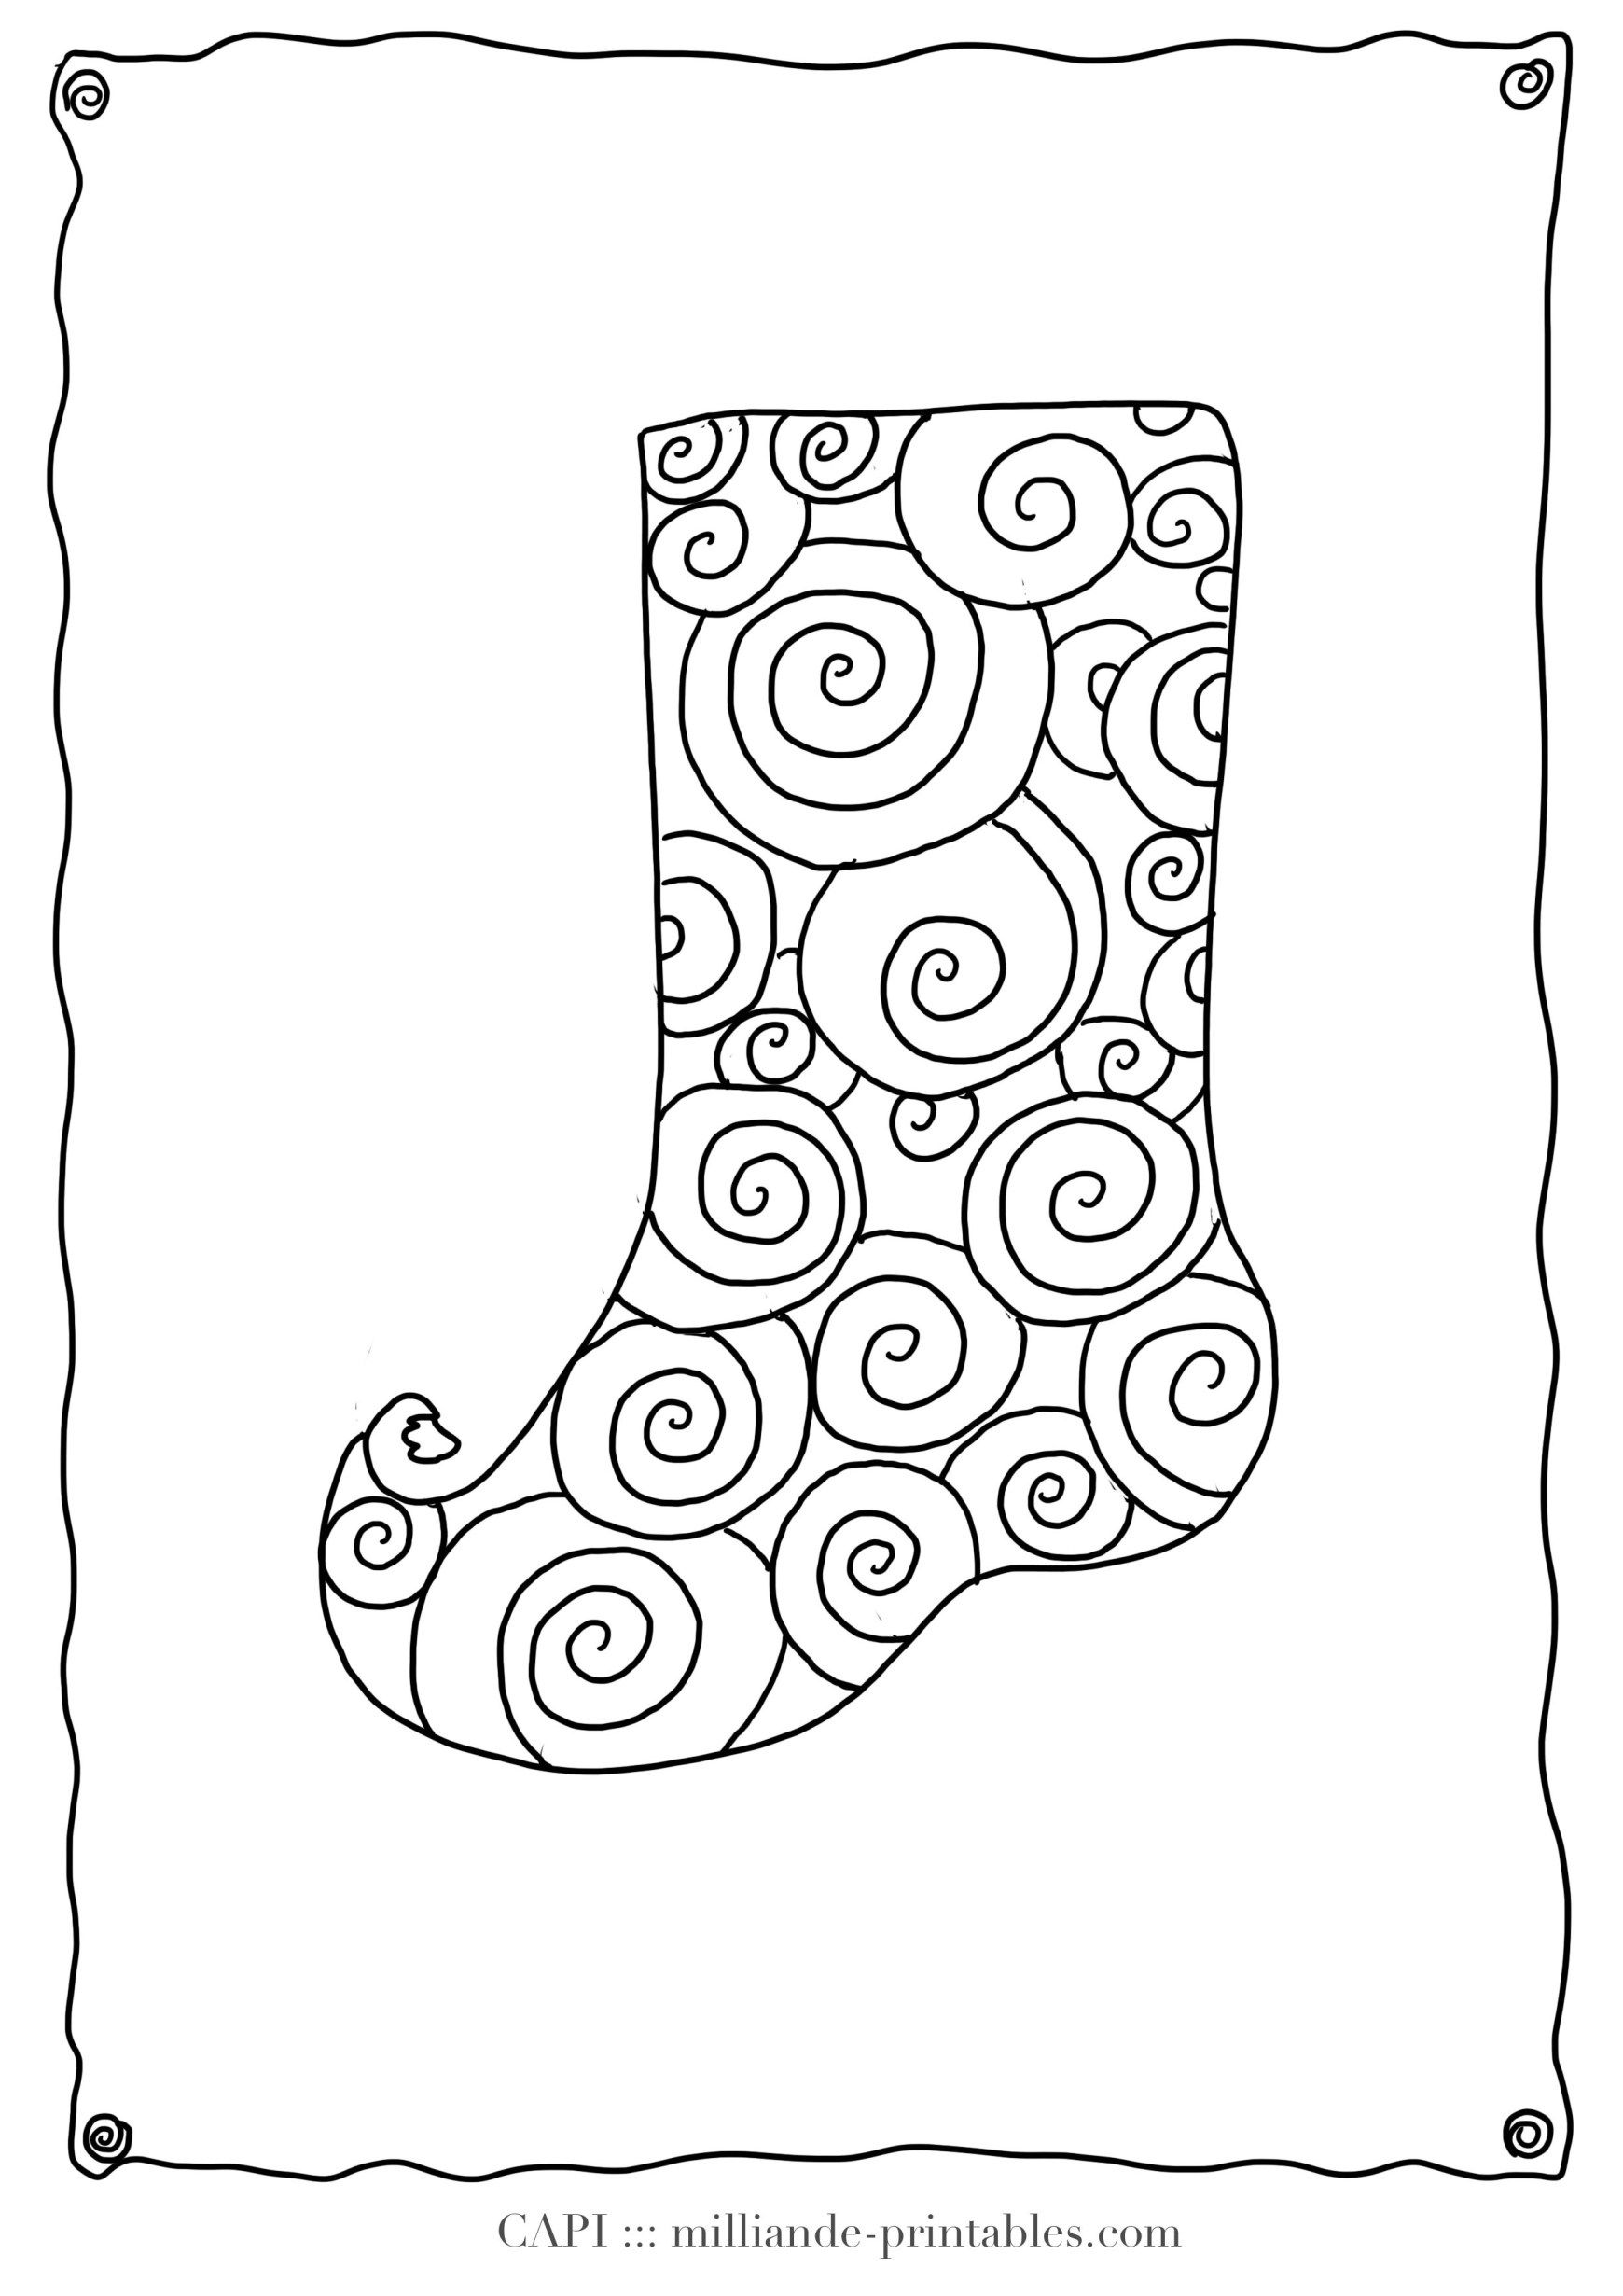 24 Marvelous Image Of Stocking Coloring Page Davemelillo Com Christmas Coloring Pages Free Christmas Coloring Pages Printable Christmas Stocking